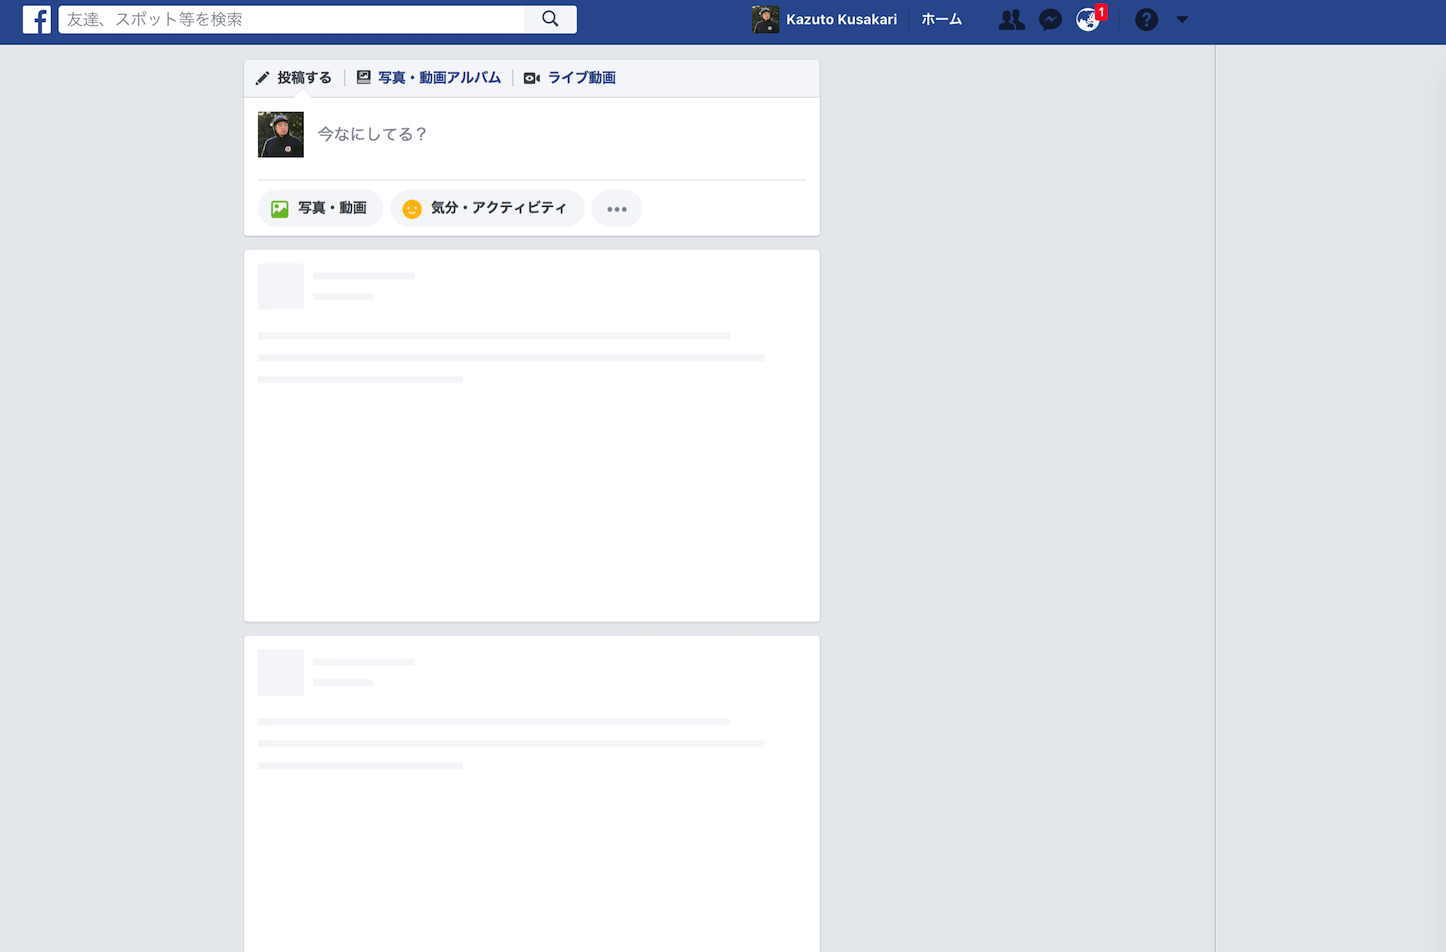 Facebook-down.png